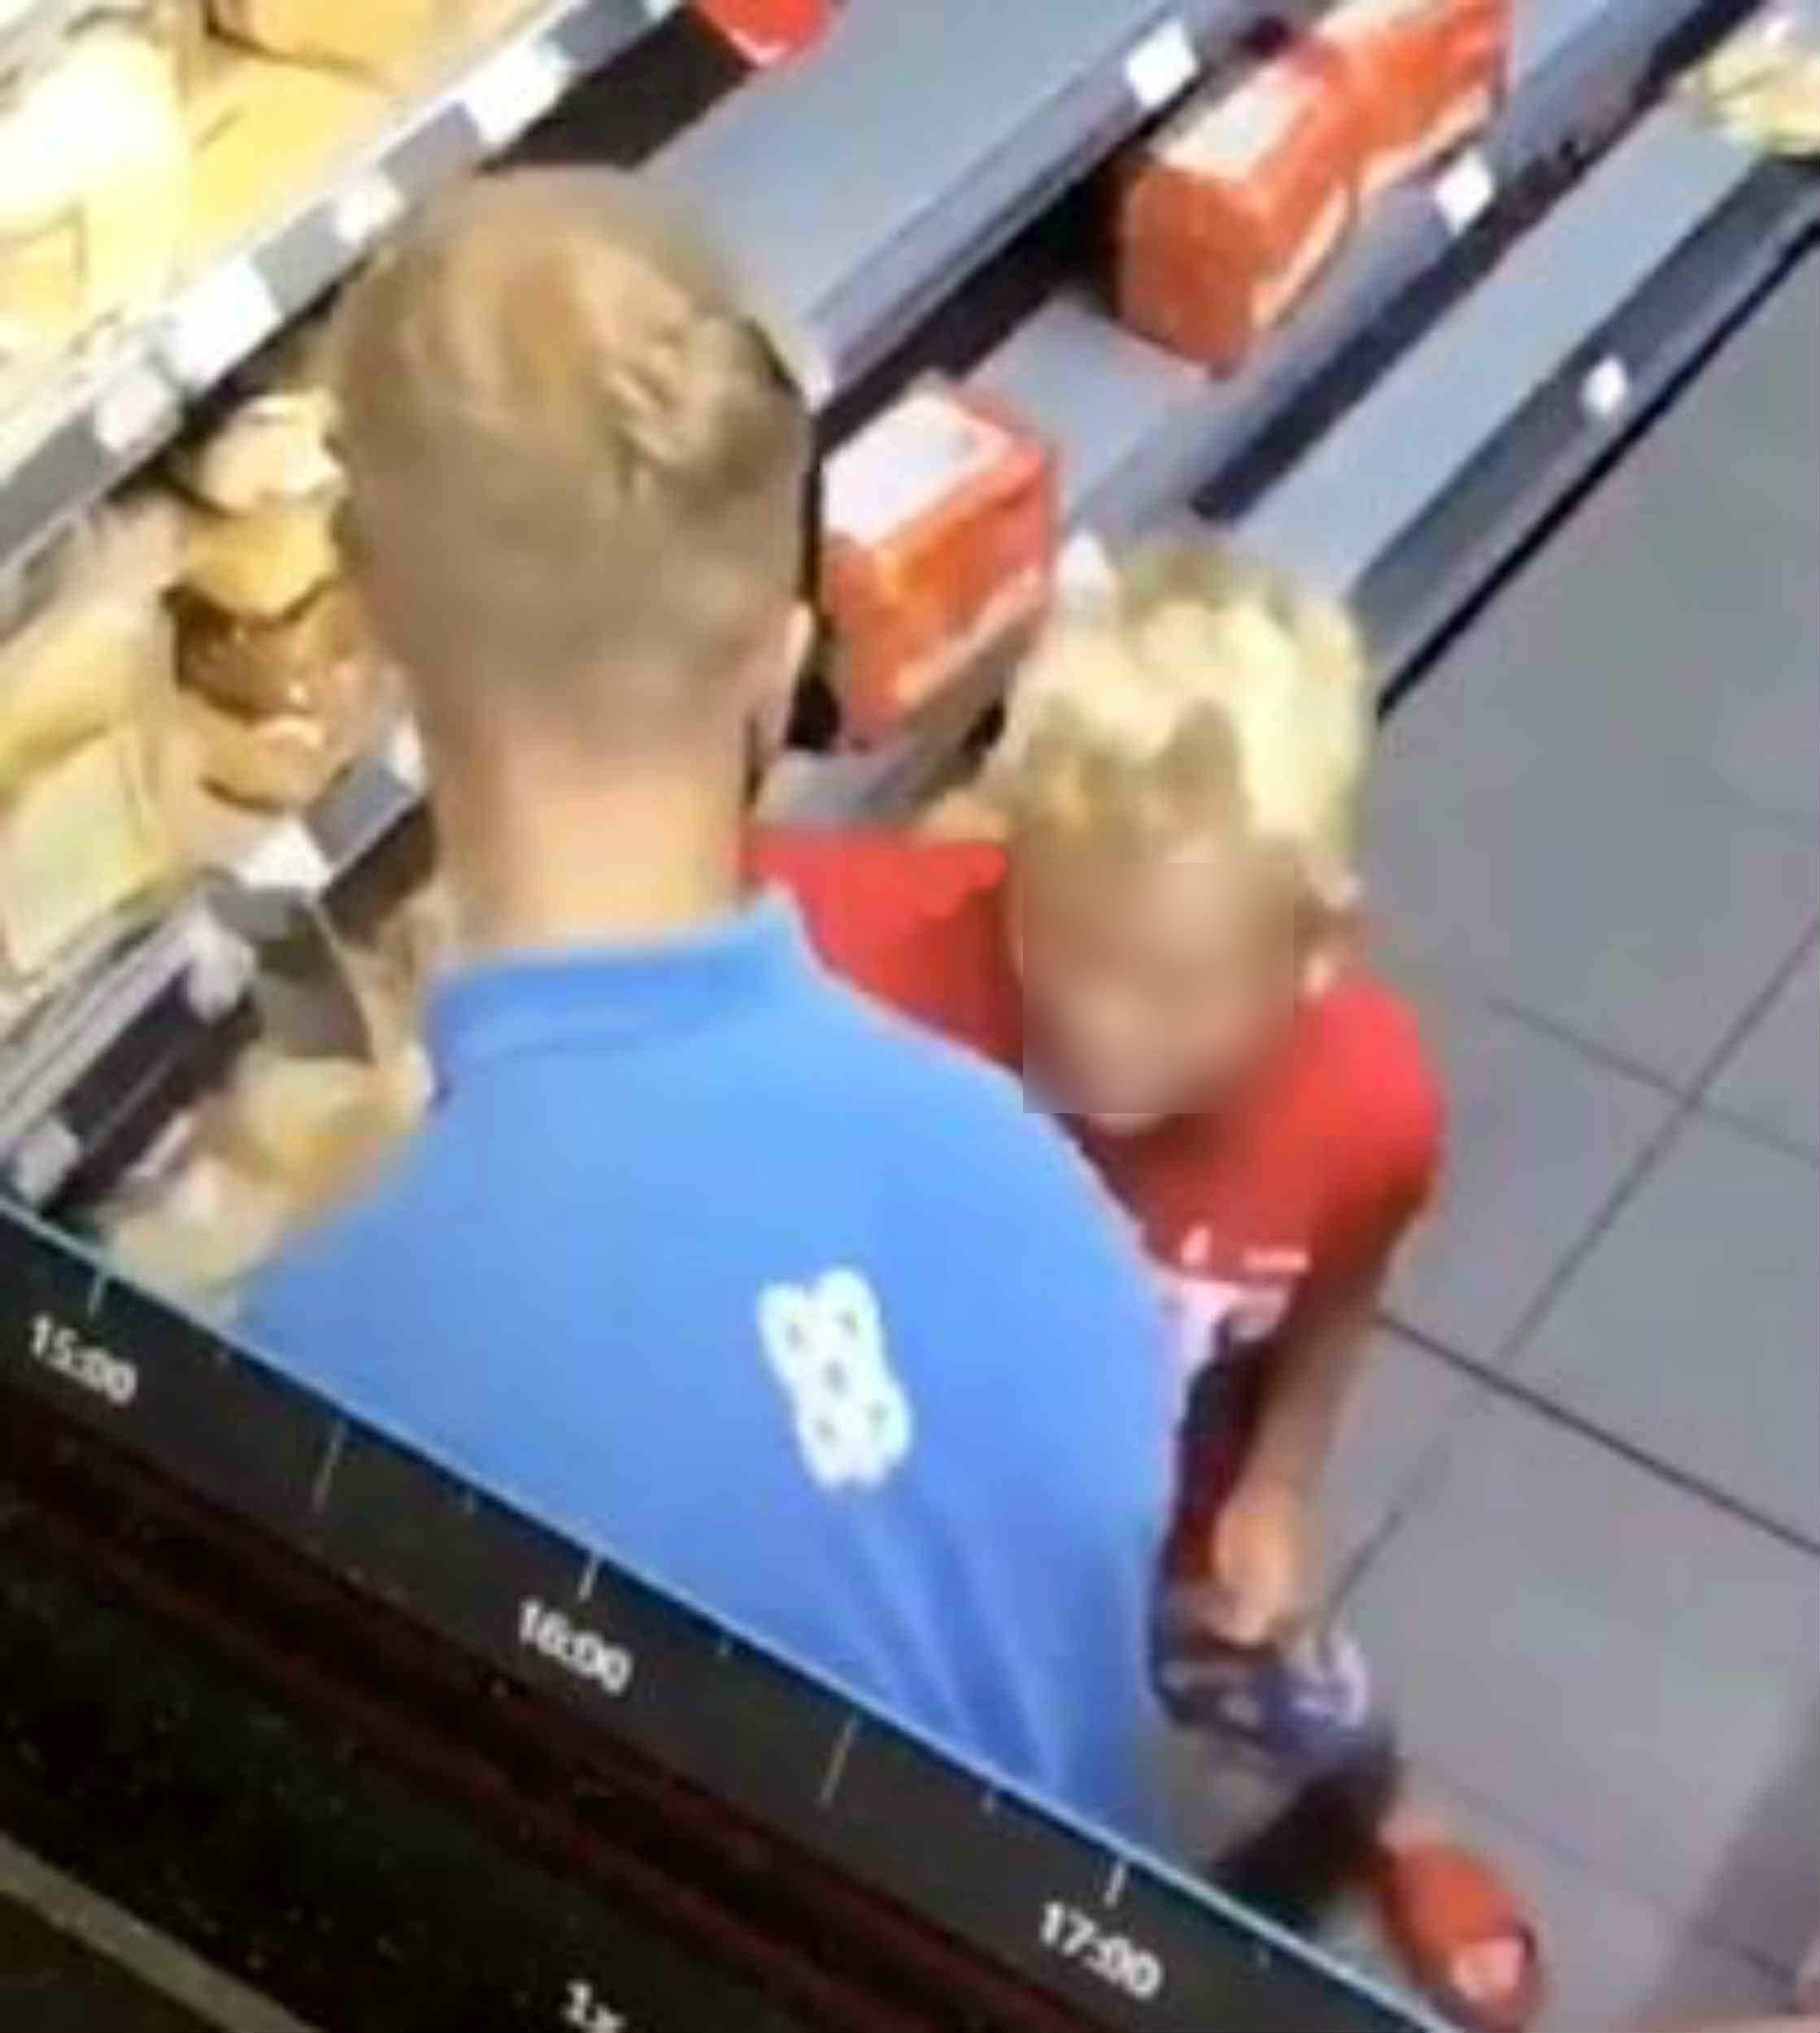 """SHOCKING video shows the moment a supermarket worker snapped and violently shoved a """"little b******"""" boy against shelving. The blond boy, wearing a """"Boss"""" T shirt and aged about nine, had been """"annoying"""" the worker at a store in Ilkeston, Derbyshire. The CCTV footage shows the man push the boy hard with his hand, propelling him into the shelving behind and knocking him off his feet. During the clip, which appears to have been filmed from the store's security camera, a man can be heard saying: """"Little b******"""". The incident is understood to have happened on August 7 last year when temperatures in the area hit 80F (27C) and tempers may have been frayed. The footage has only now emerged on social media and was posted to Sam Smith's Twitter page with the caption: ?Think this might be why Miles got sacked.?"""